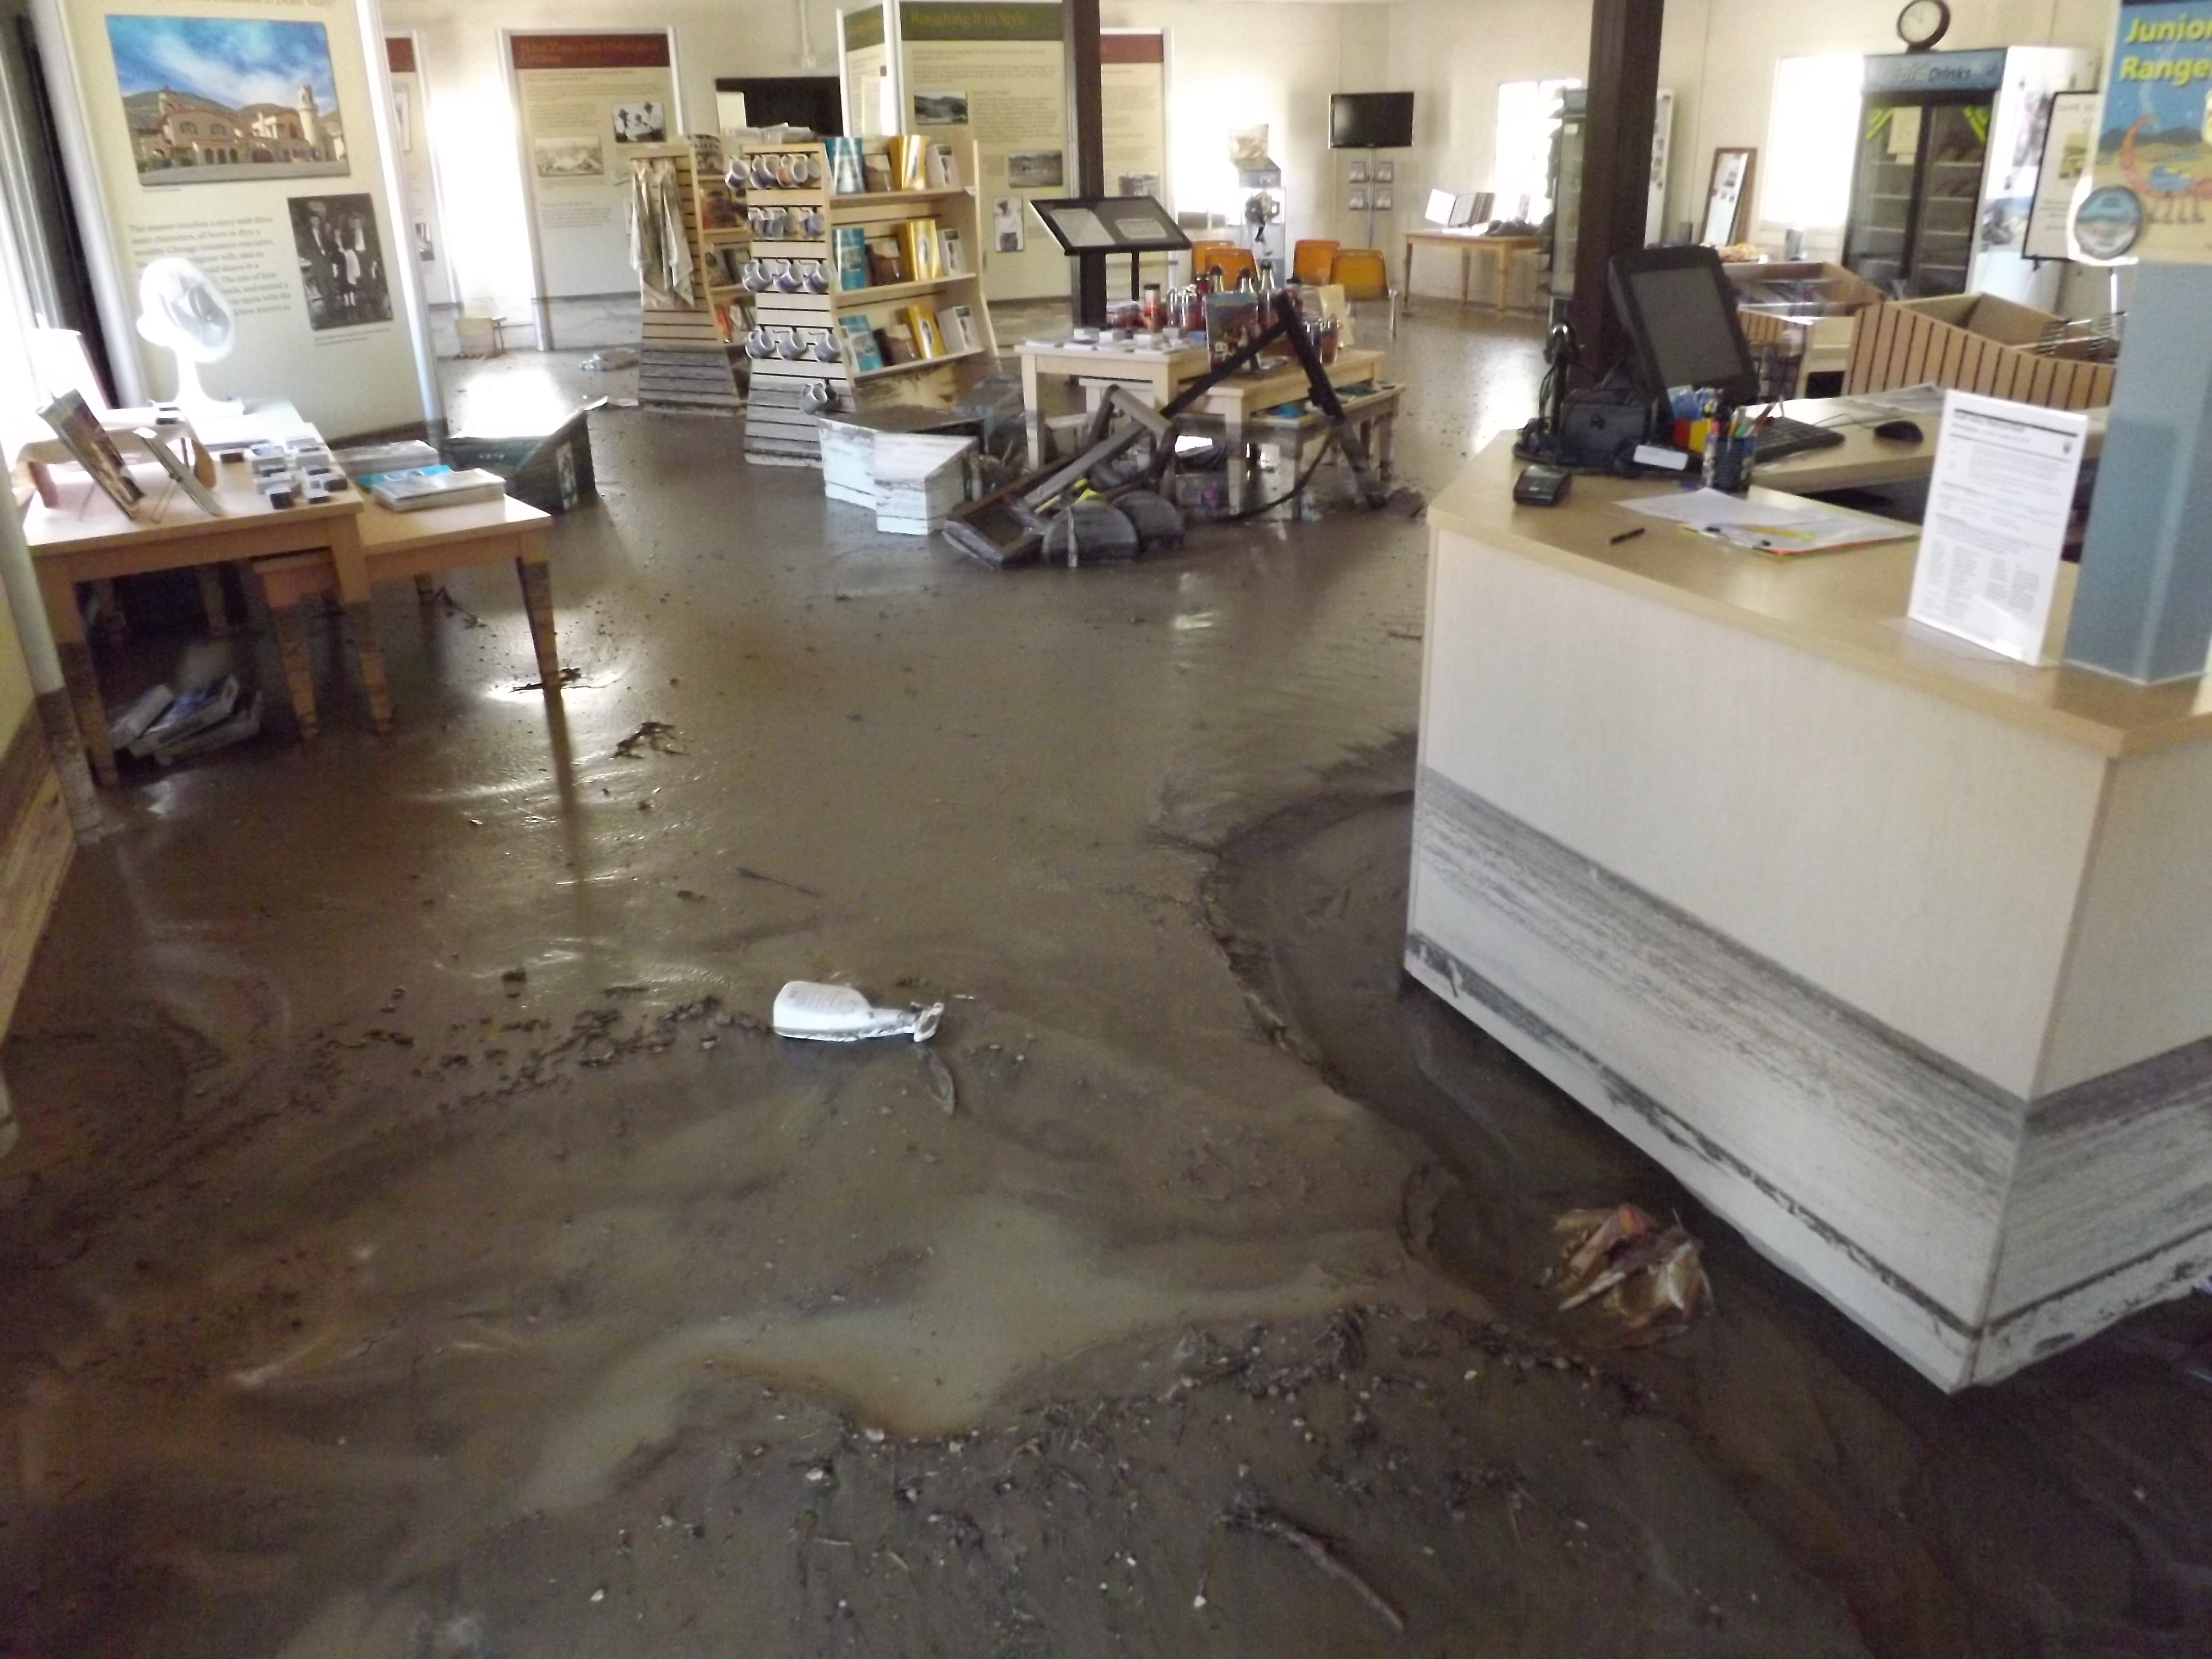 The main room of the visitor center, including the front desk and the gift store, with about one foot of mud covering the entire floor.